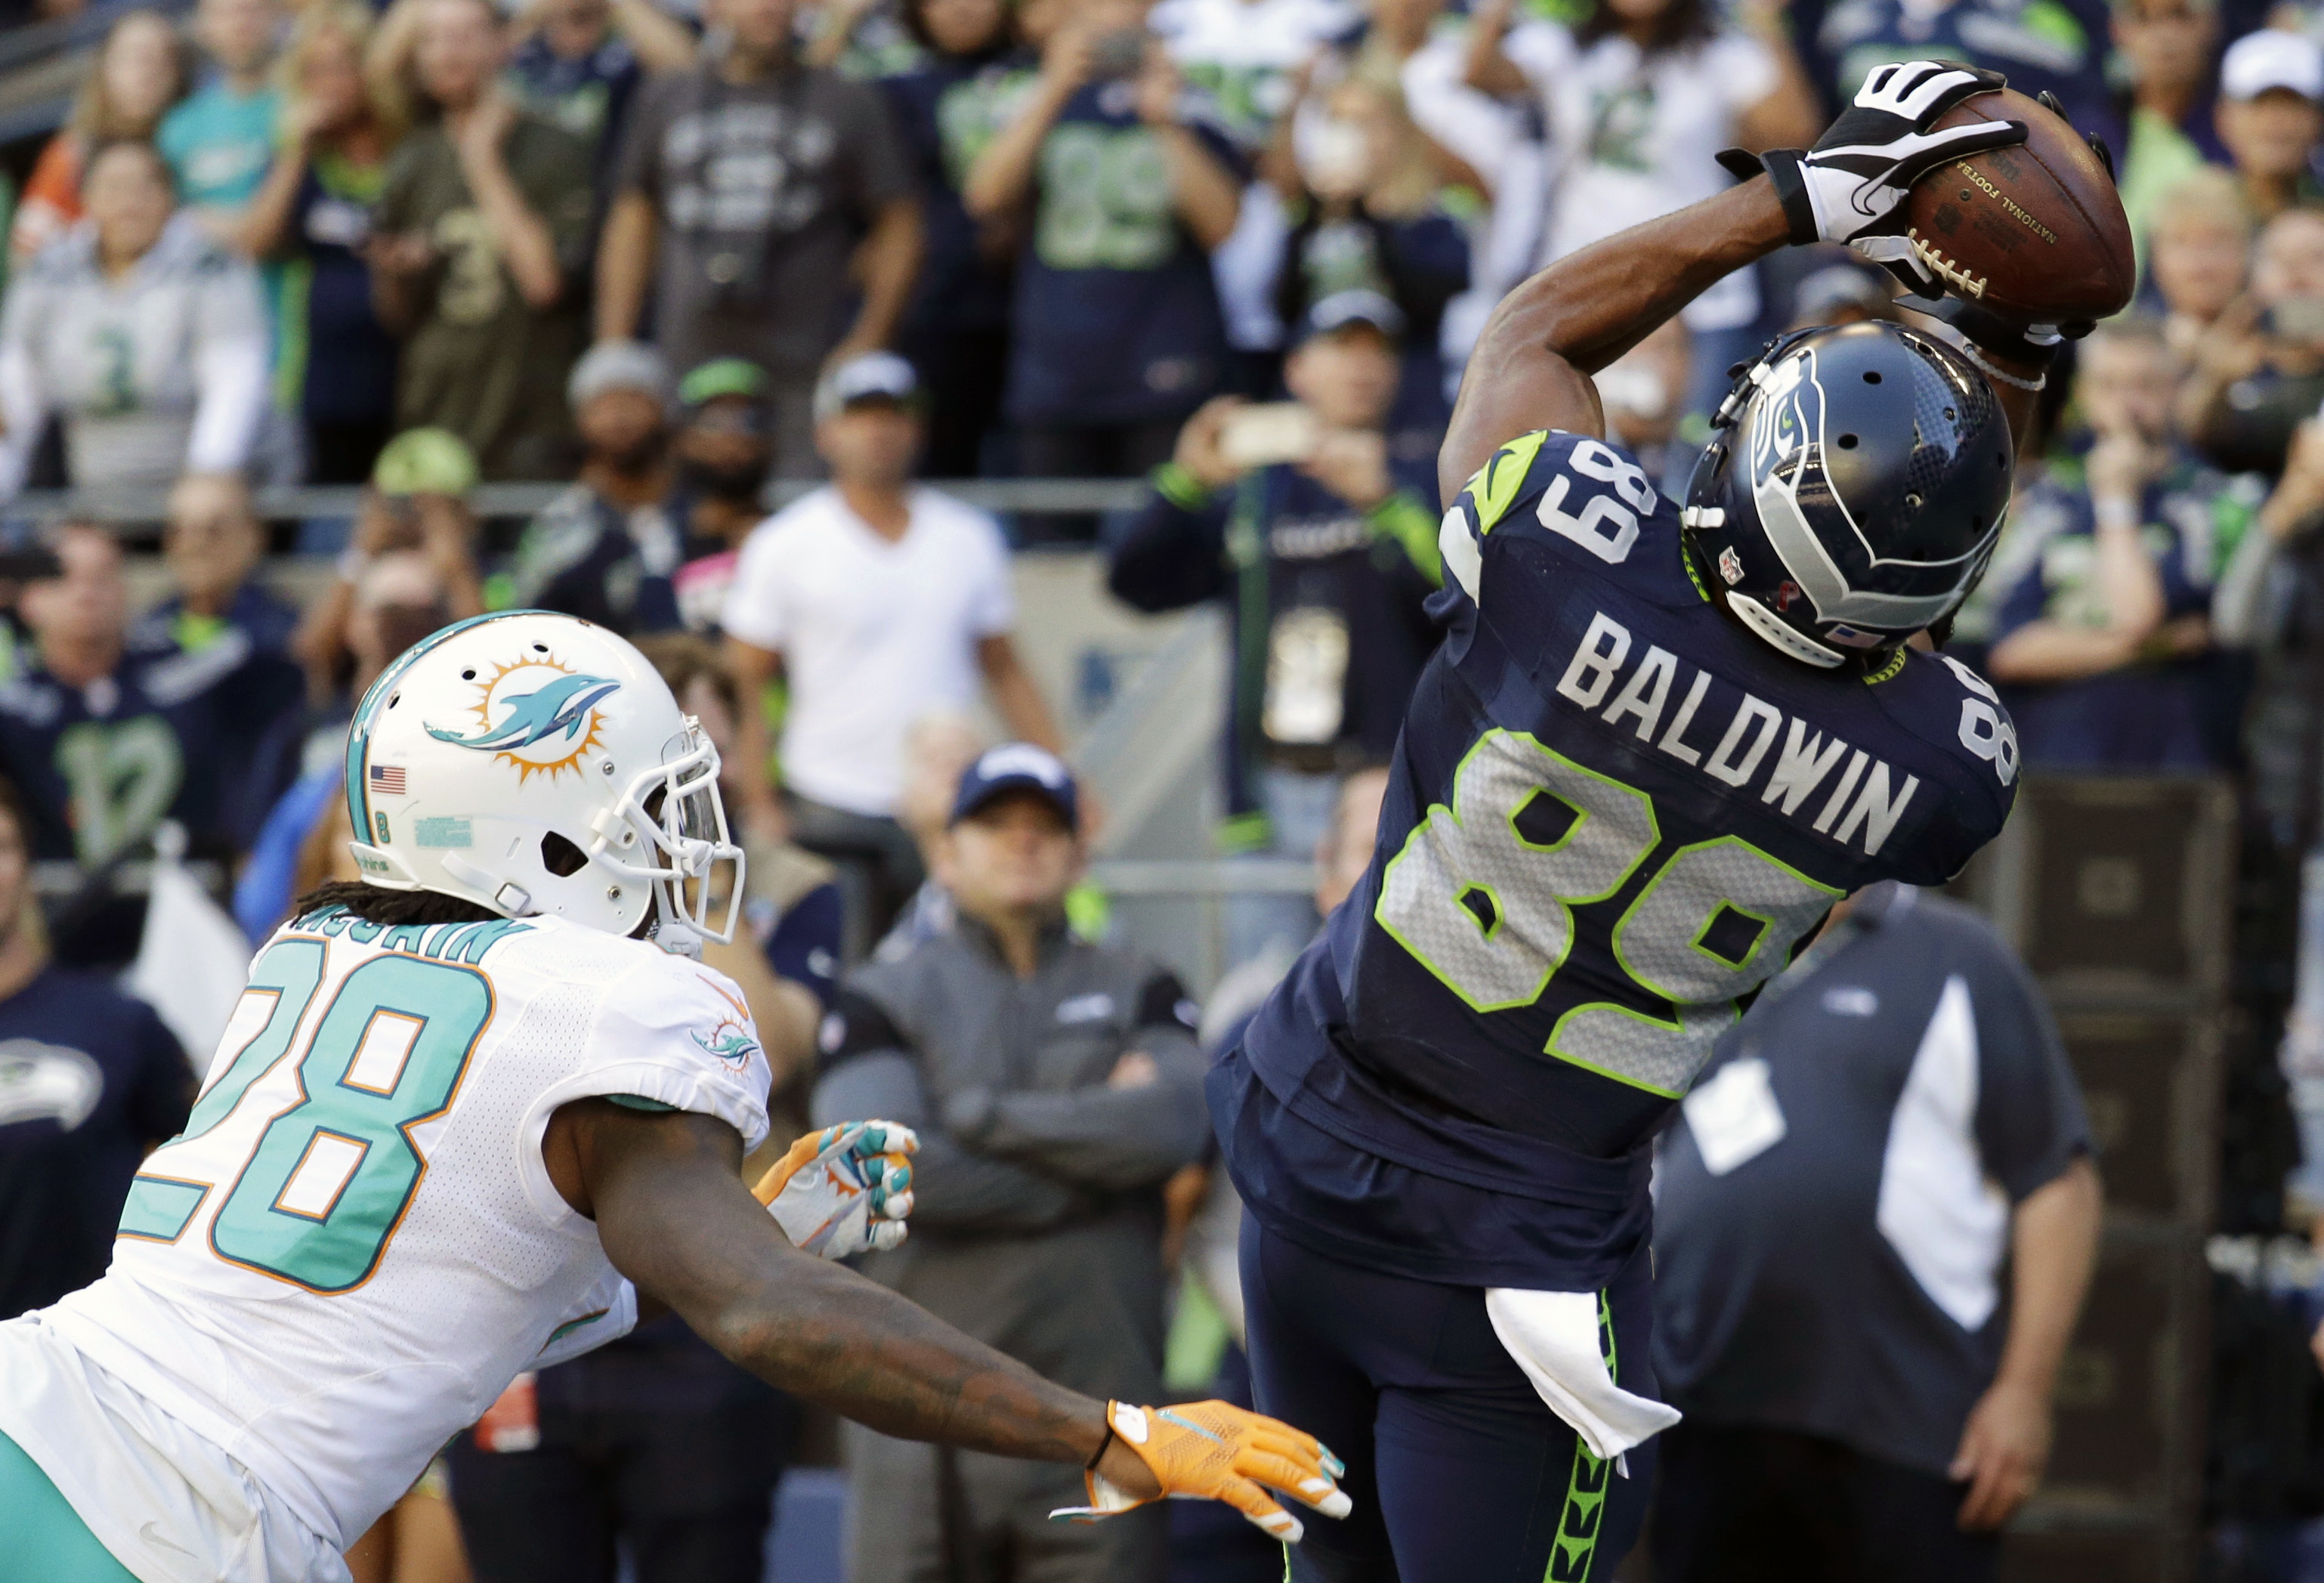 Seattle Seahawks wide receiver Doug Baldwin (89) catches a pass for a touchdown over Miami Dolphins cornerback Bobby McCain (28) in the second half of an NFL football game, Sunday, Sept. 11, 2016, in Seattle. (AP Photo/Elaine Thompson)